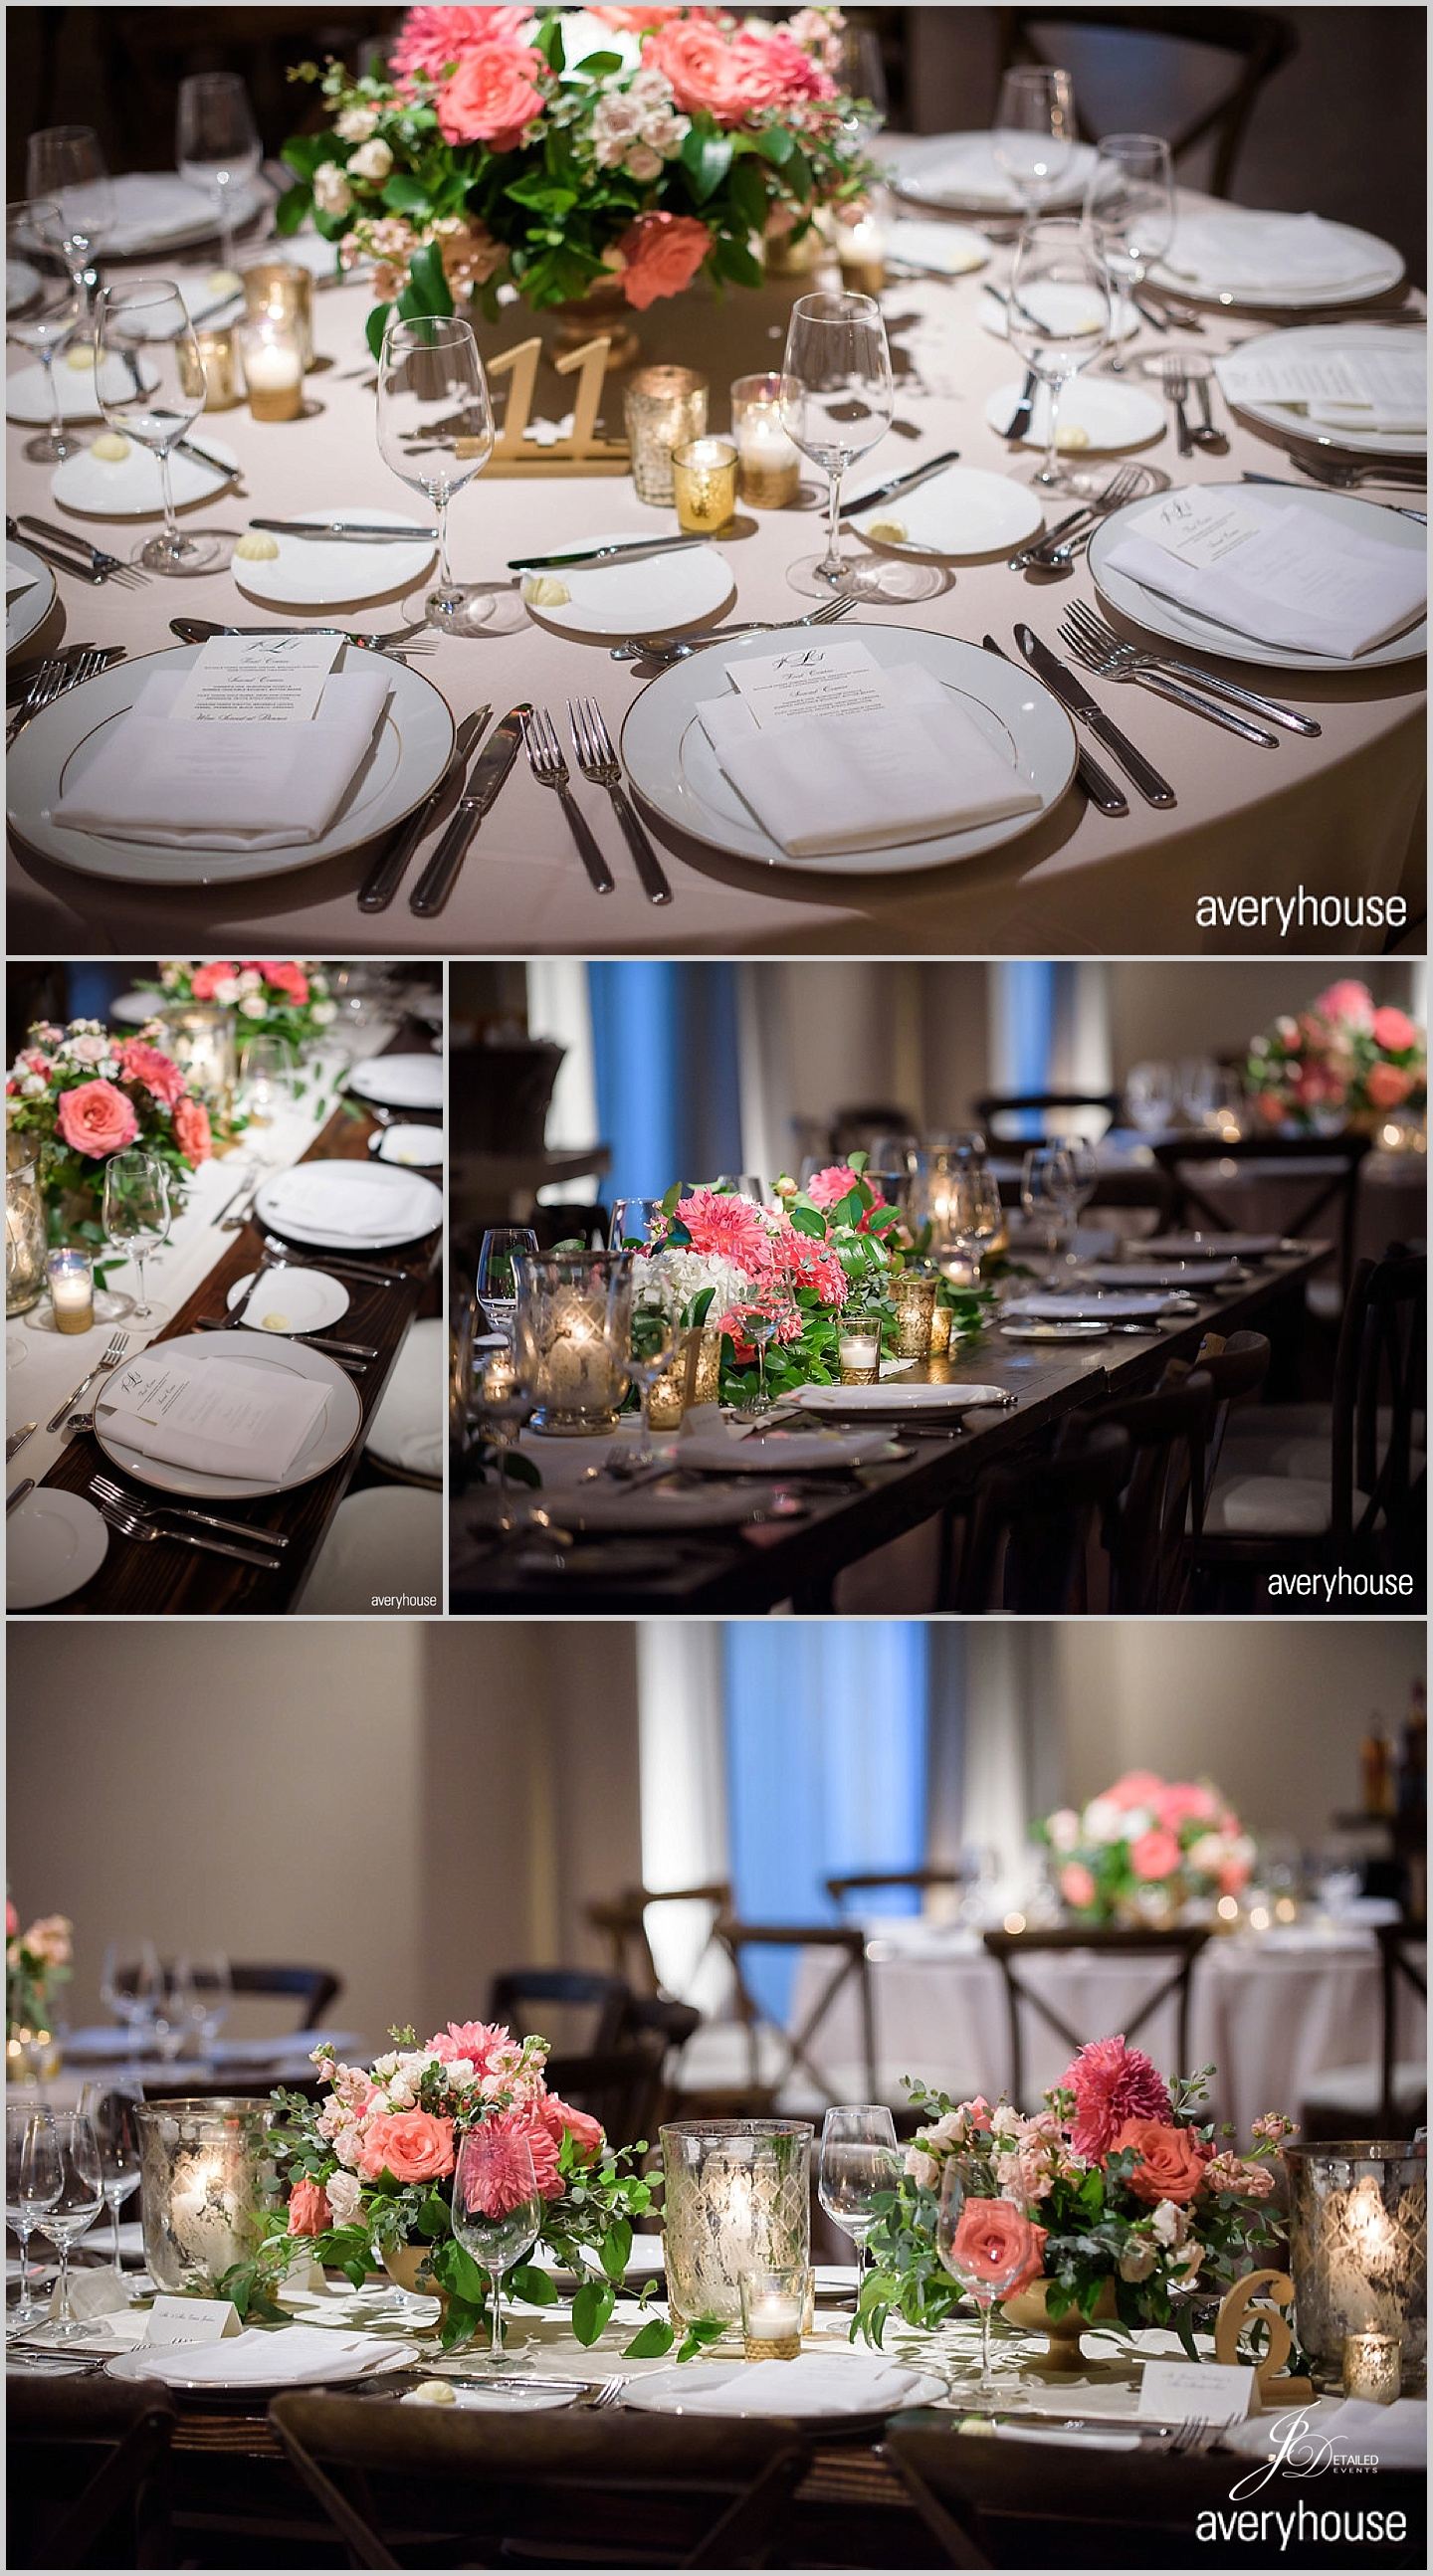 avery-house-wedding-chicago_2228